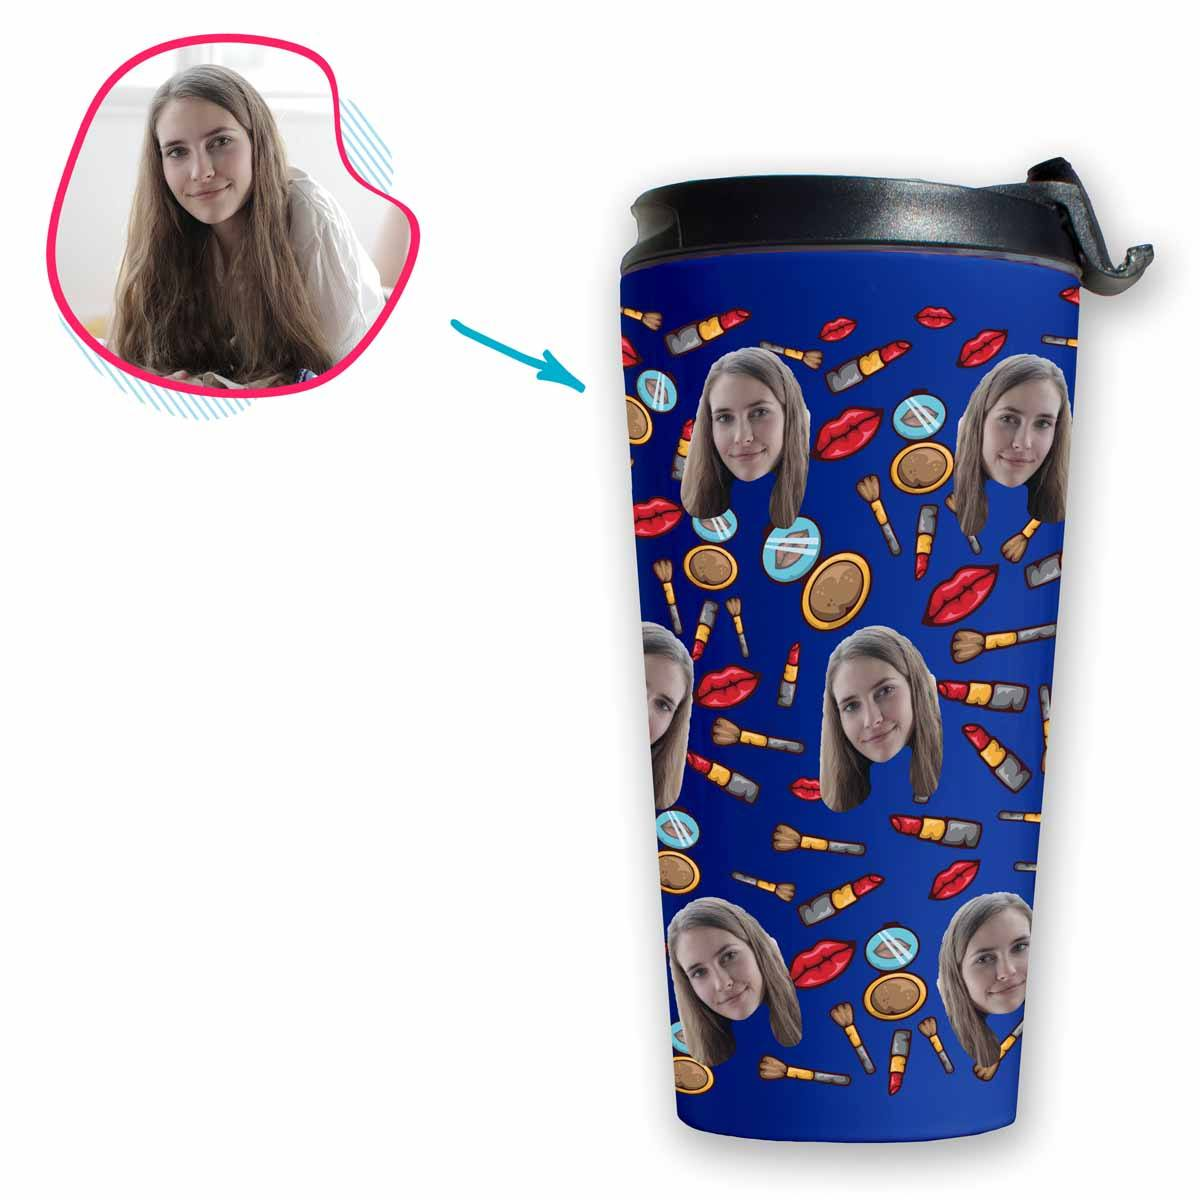 Darkblue Makeup personalized travel mug with photo of face printed on it